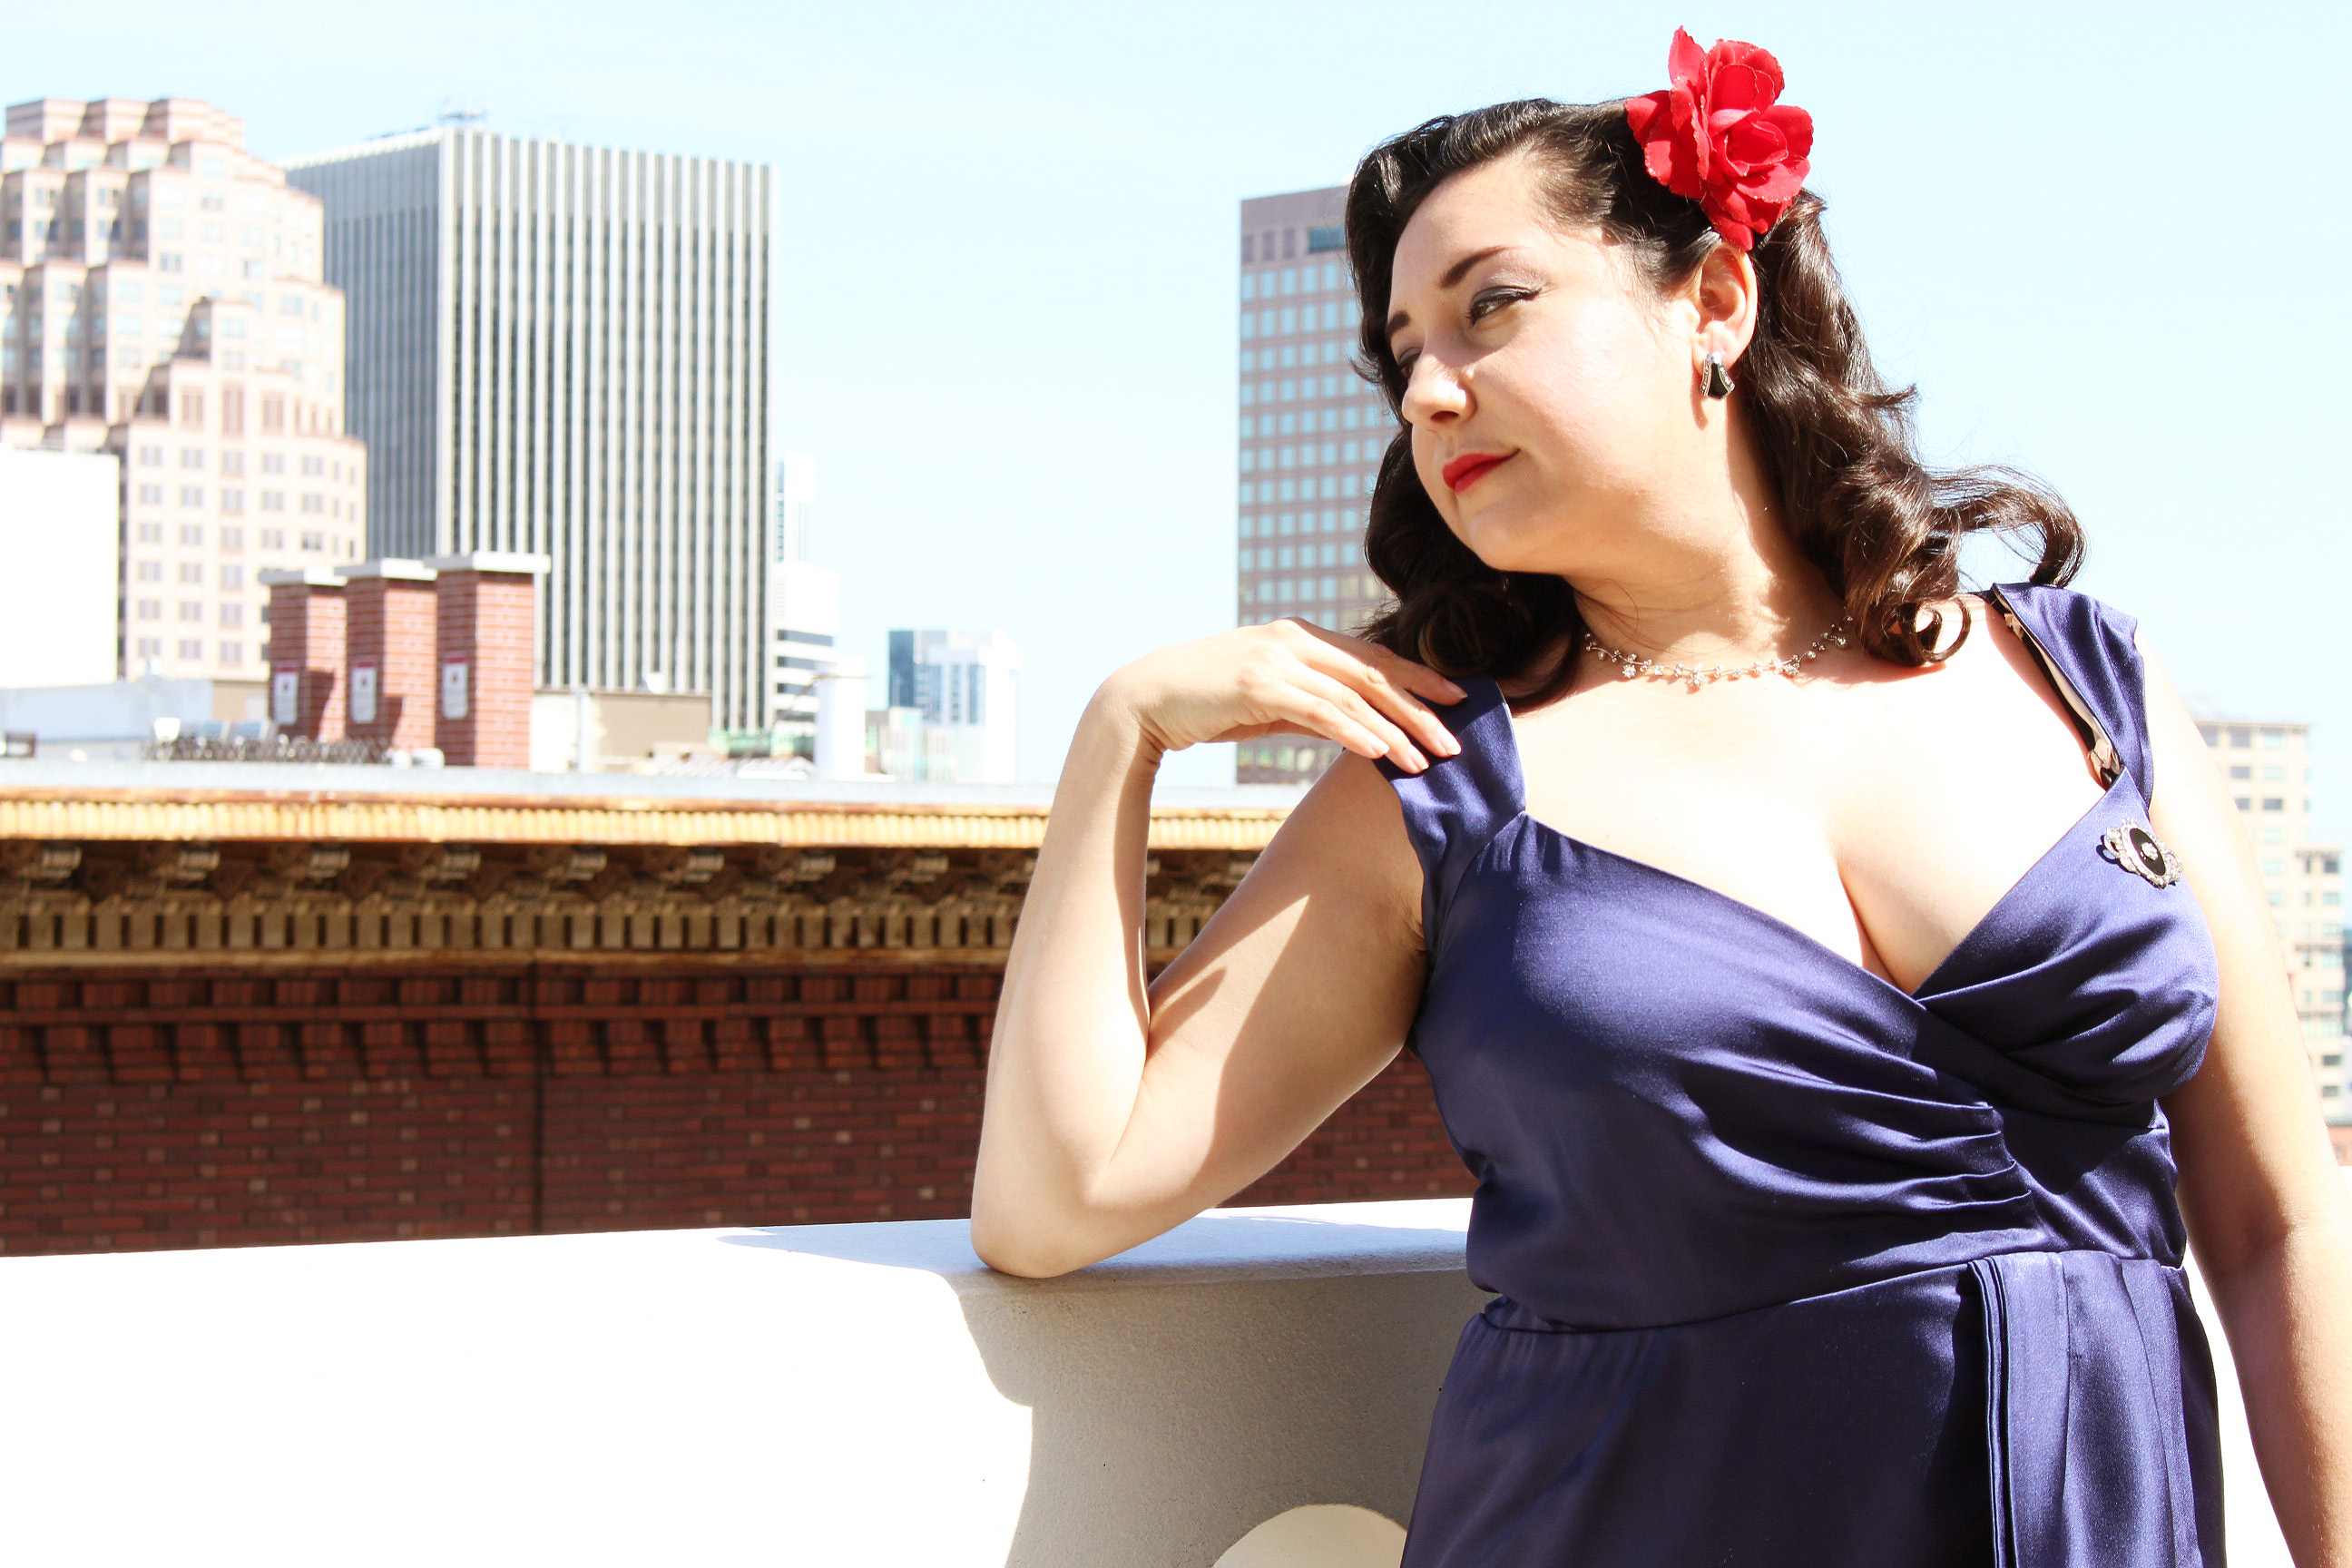 Butterick B5814, Cocktail Dress, dramatic posing! | @vintageontap